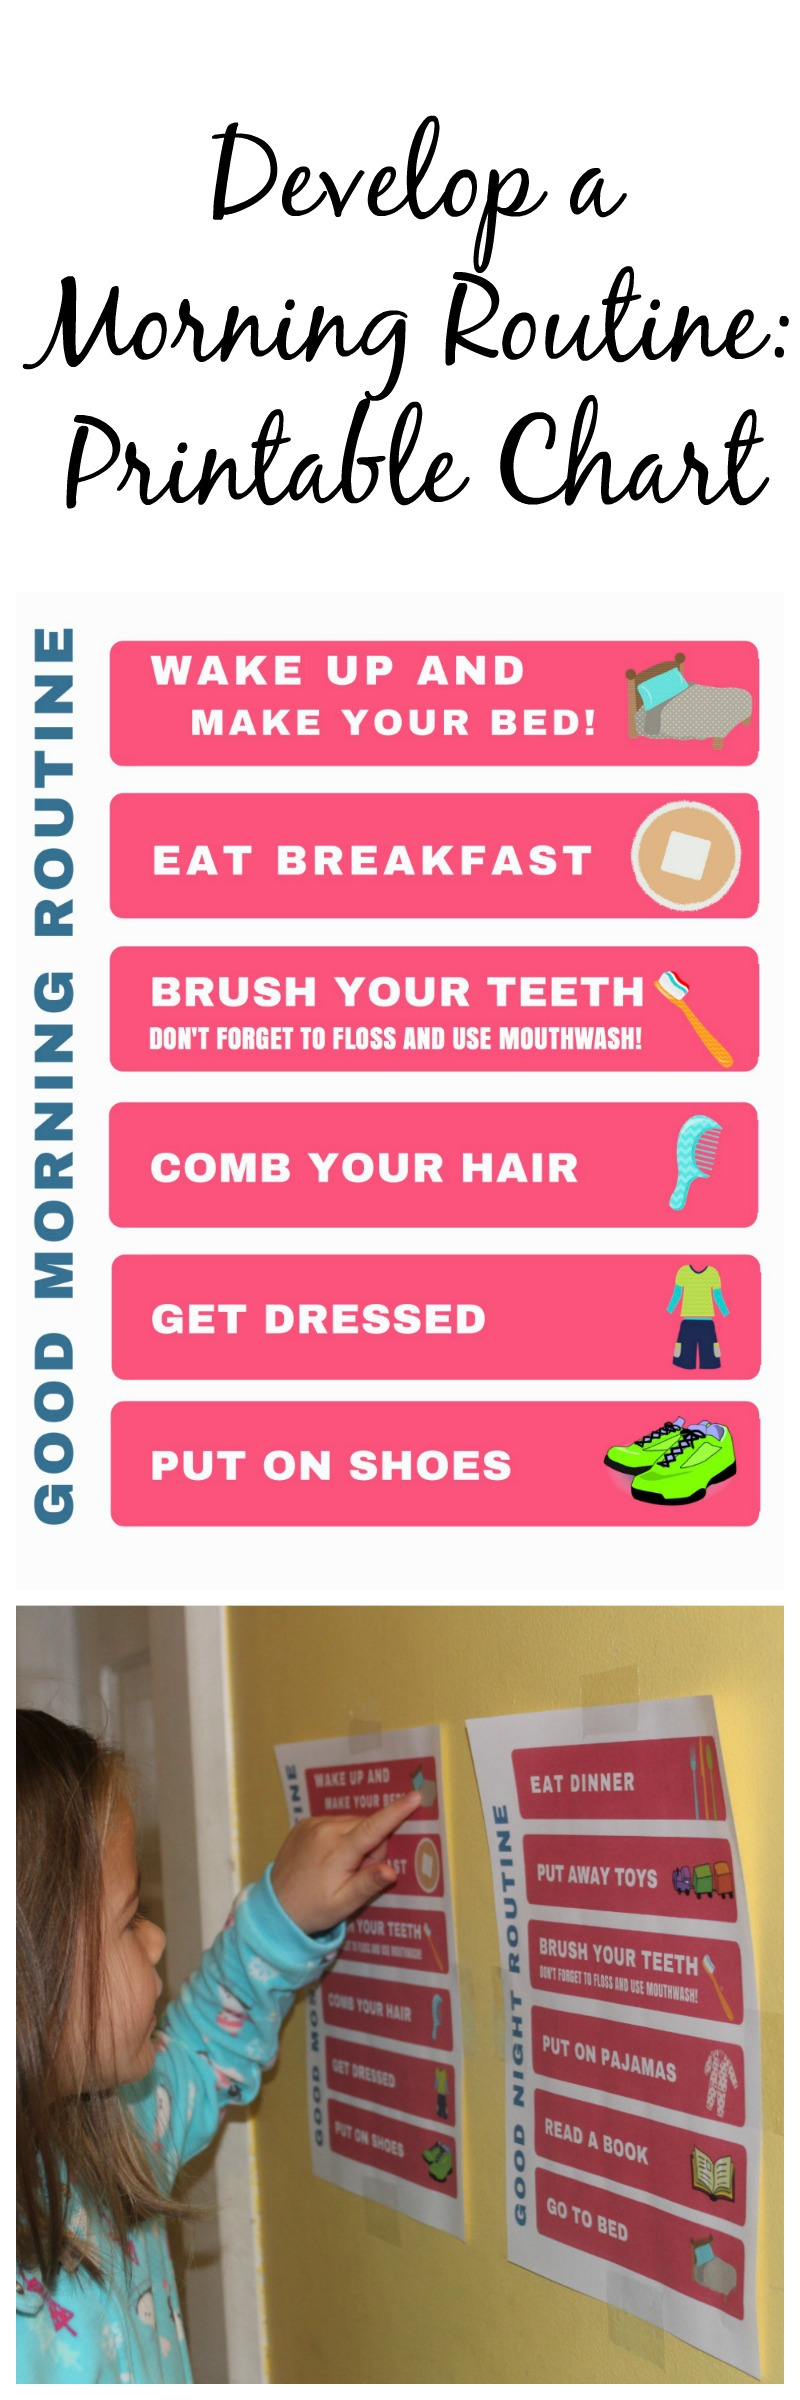 Develop a Morning Routine: Printable Chart #GoodCleanFun